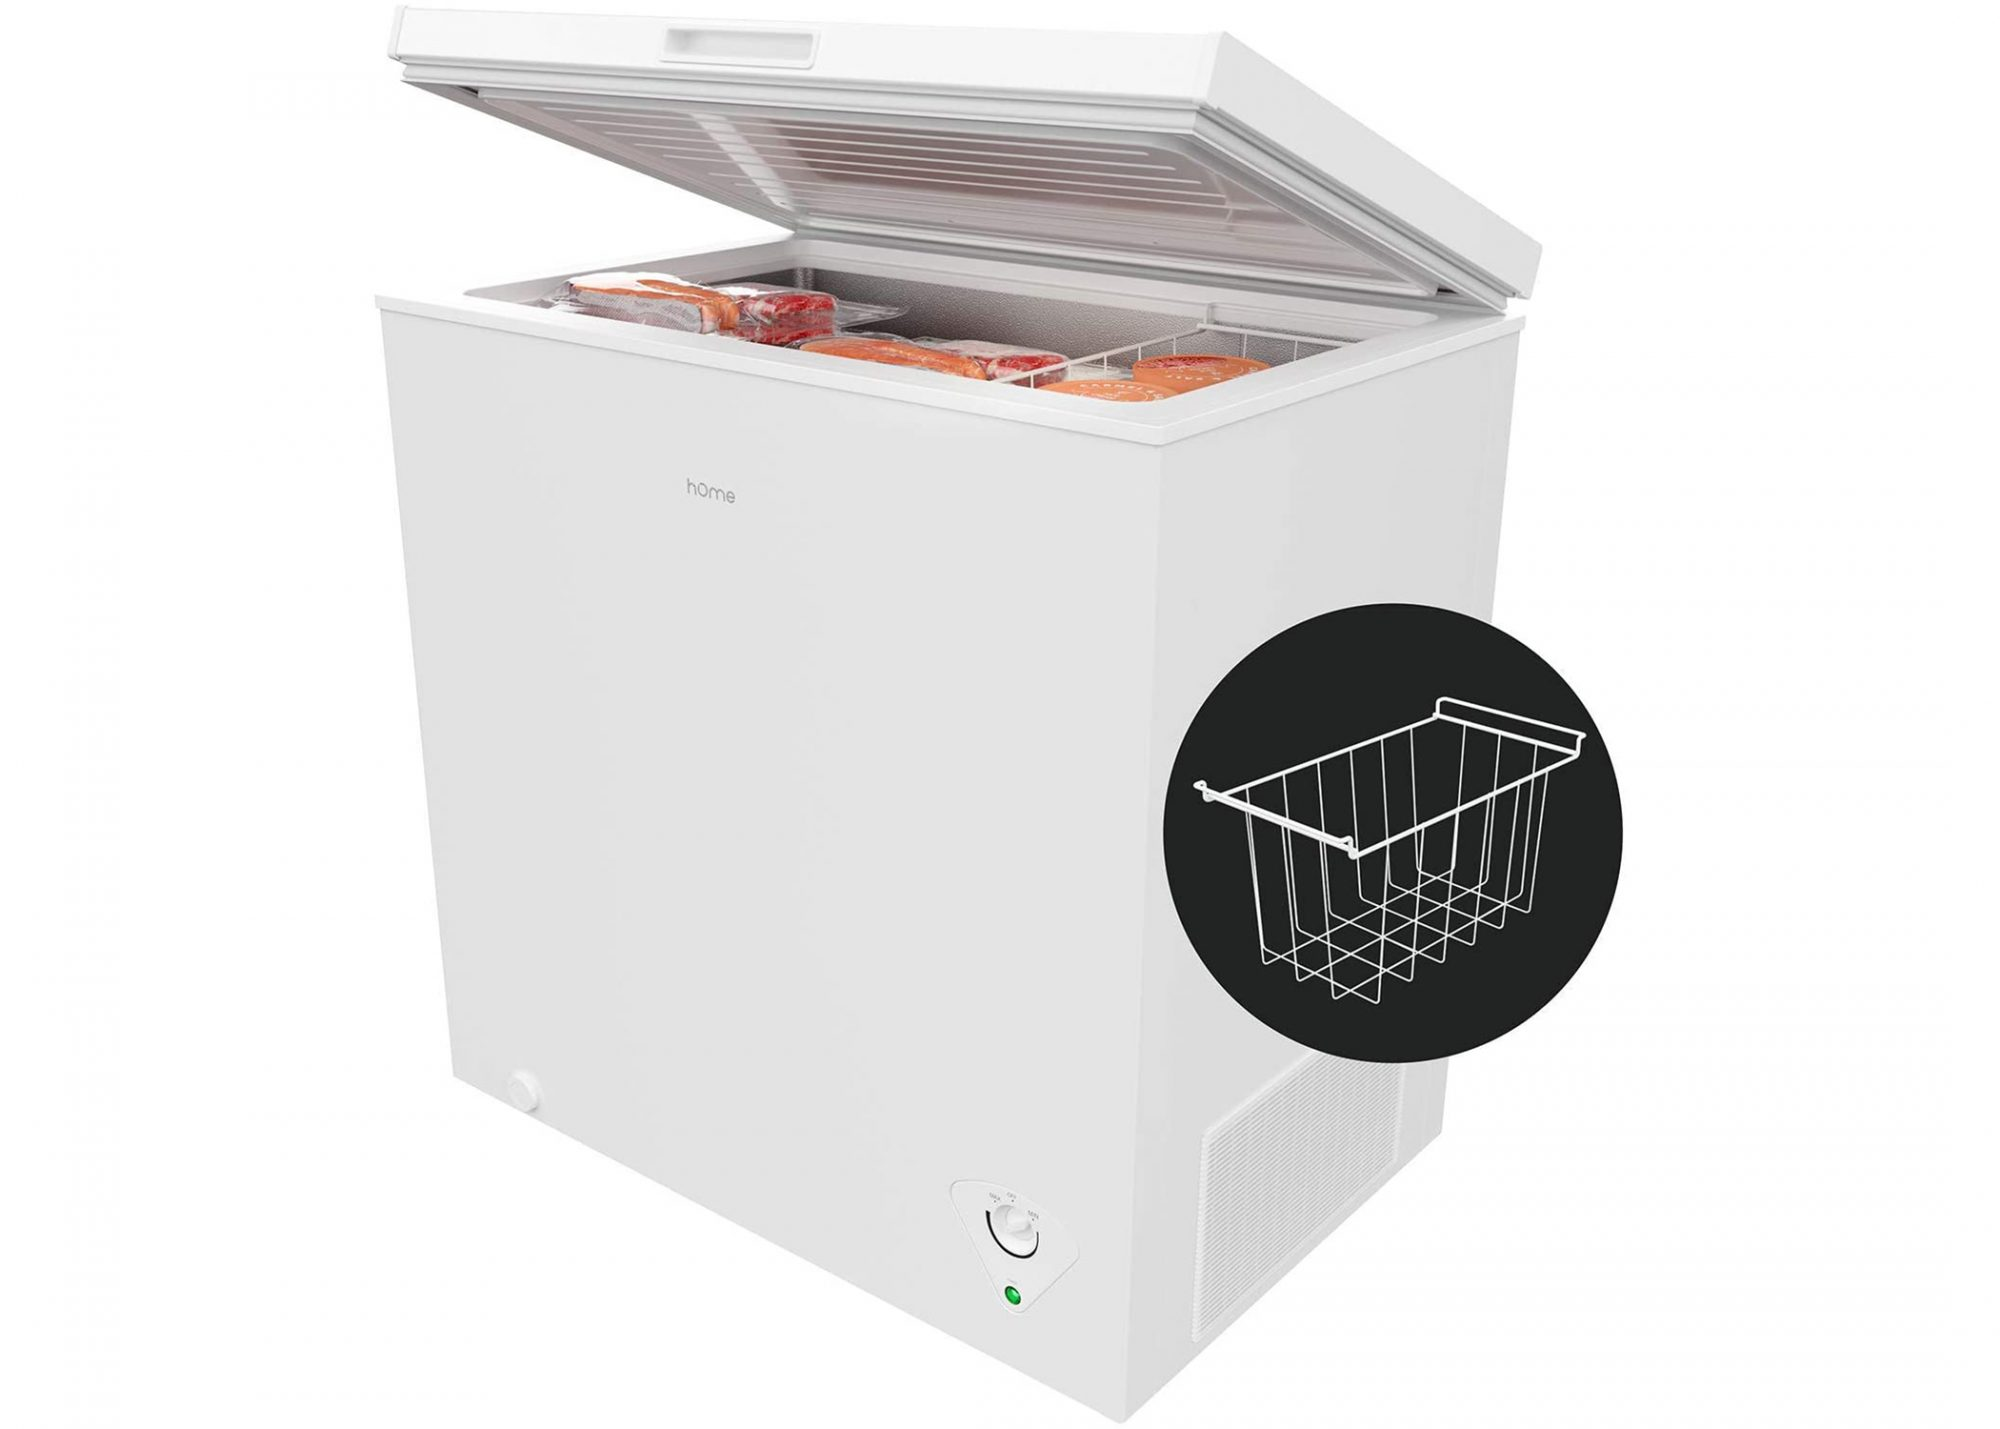 hOmeLabs chest freezer.jpg